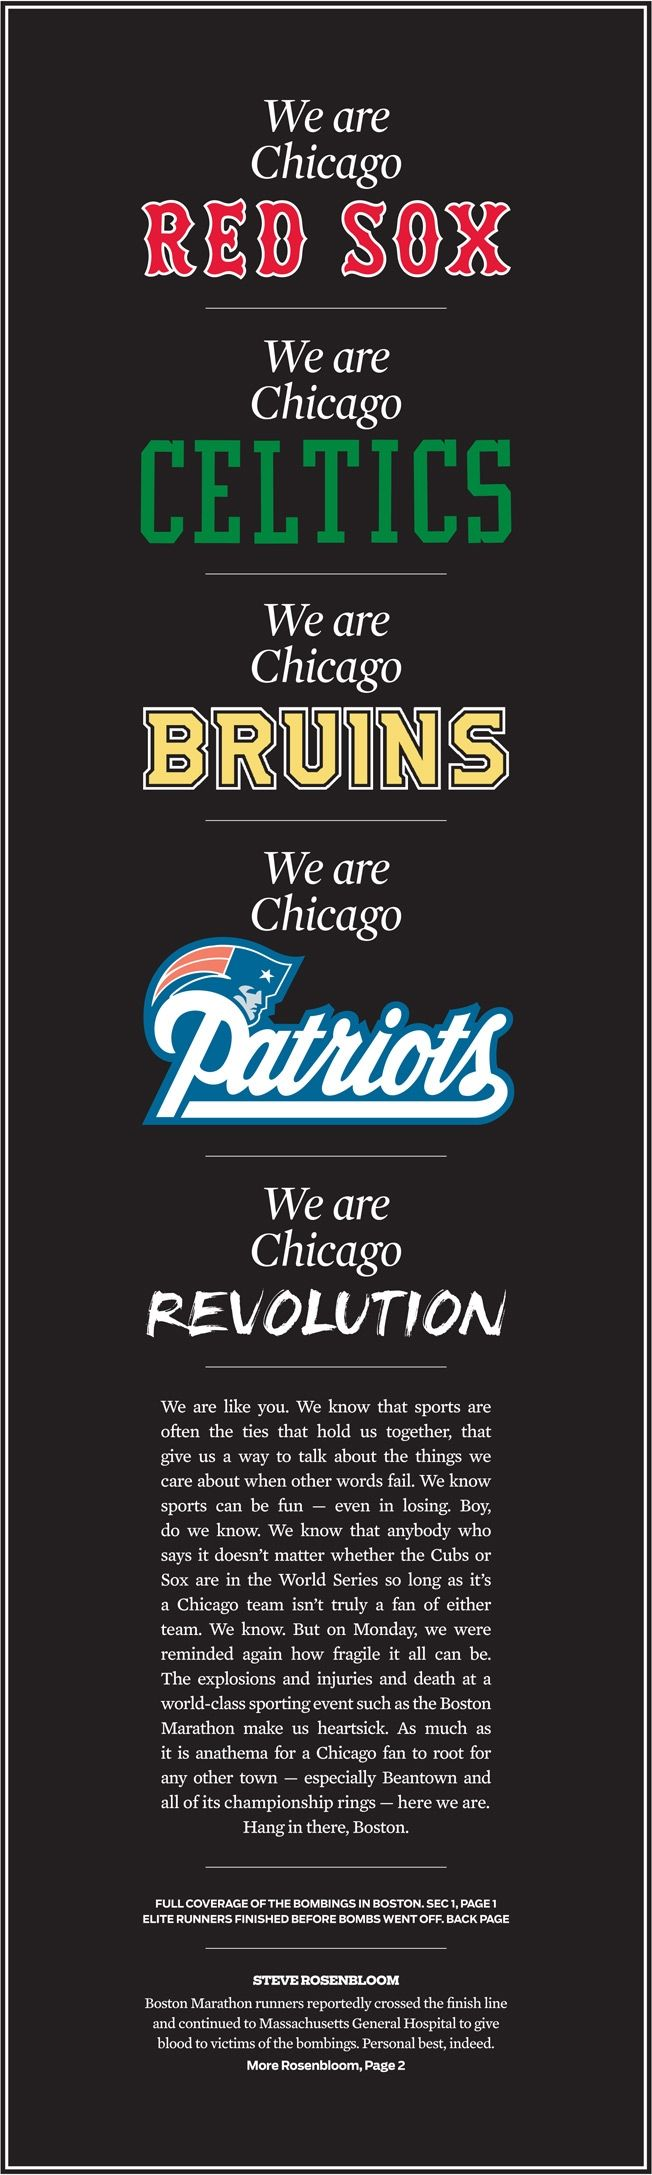 Chicago Tribune Honors Boston With Amazing Tribute From One Great Sports Town to Another | Adweek.com **This definitely moved me, and I can say for this SF/Bay Area fan, the sentiment is echoed here.** @Deborah True